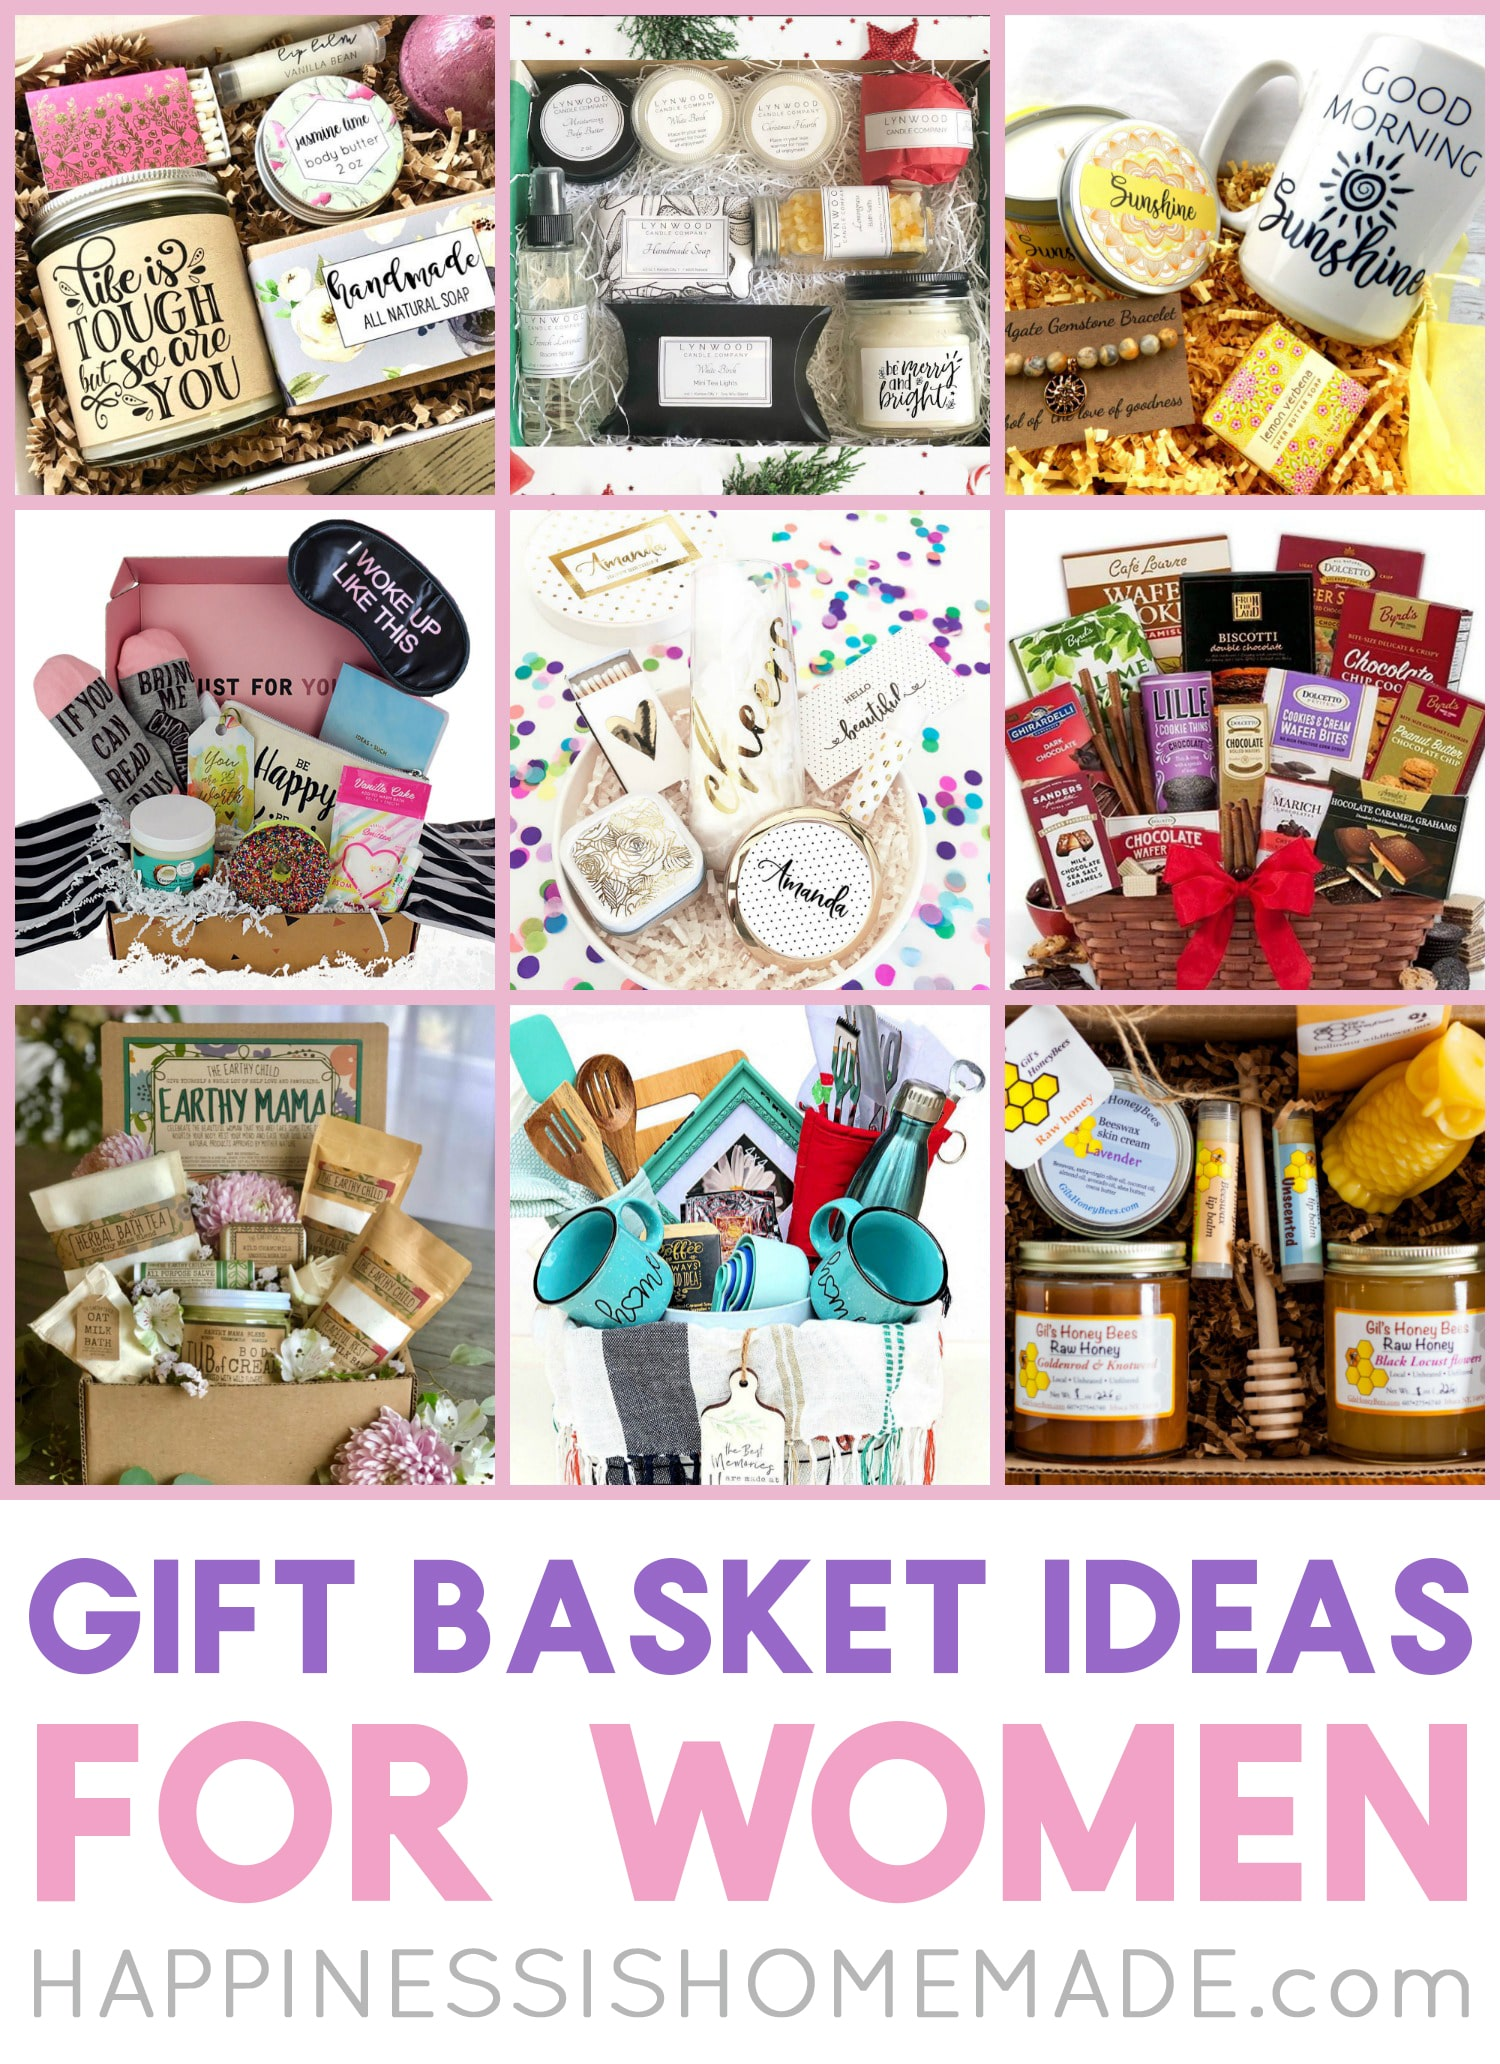 Gift Baskets for Women: Looking for unique gift basket ideas for women? Check out these awesome gift baskets that are perfect for all of the ladies in your life! Spa baskets, chocolate, coffee, tea, and SO much more! via @hihomemadeblog